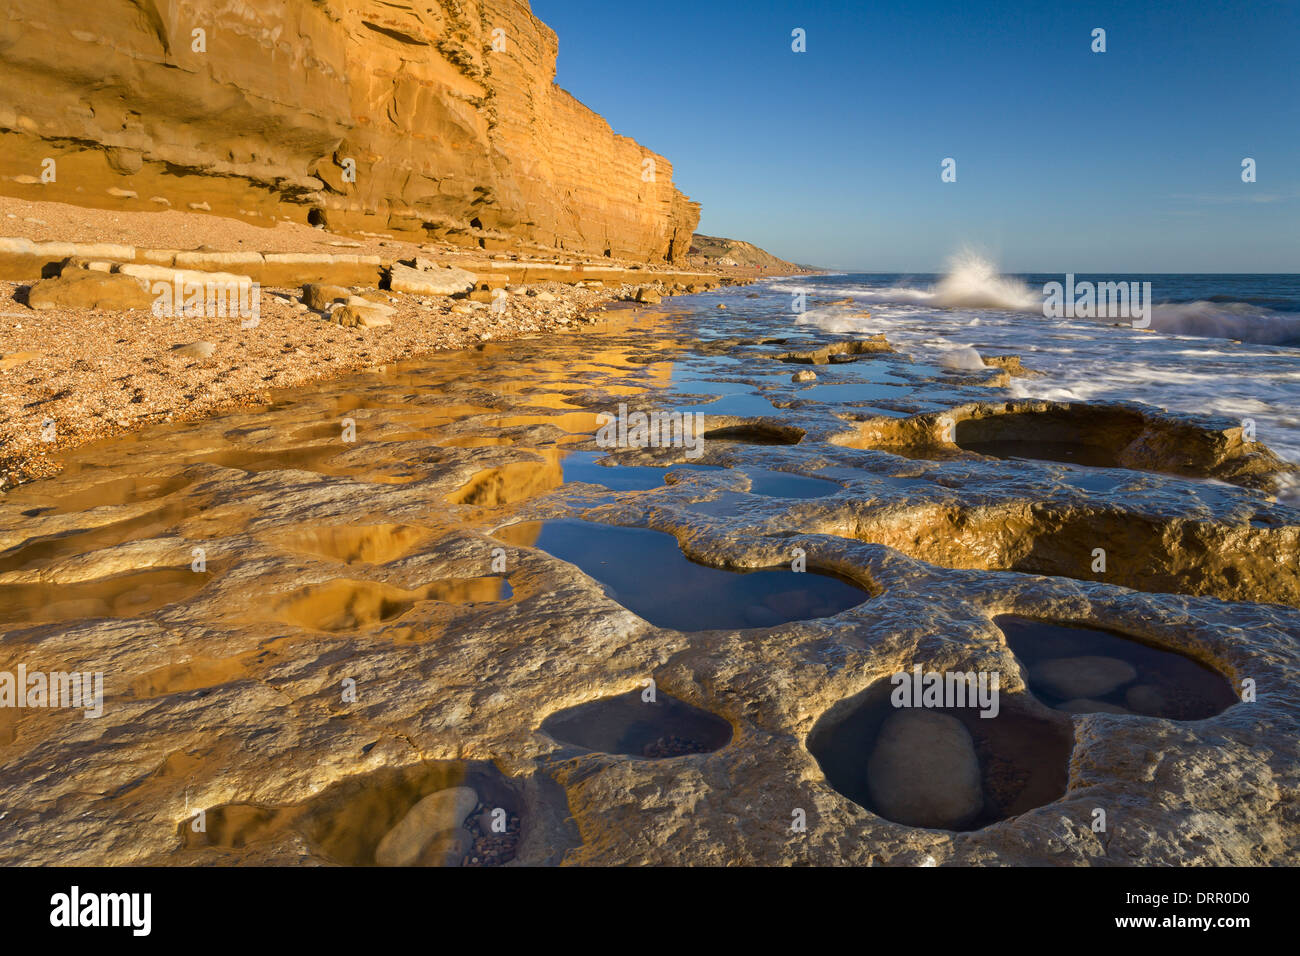 Exposed ledges and rockpools at Hive Beach, Burton Bradstock on the Jurassic Coast, Dorset, England. - Stock Image